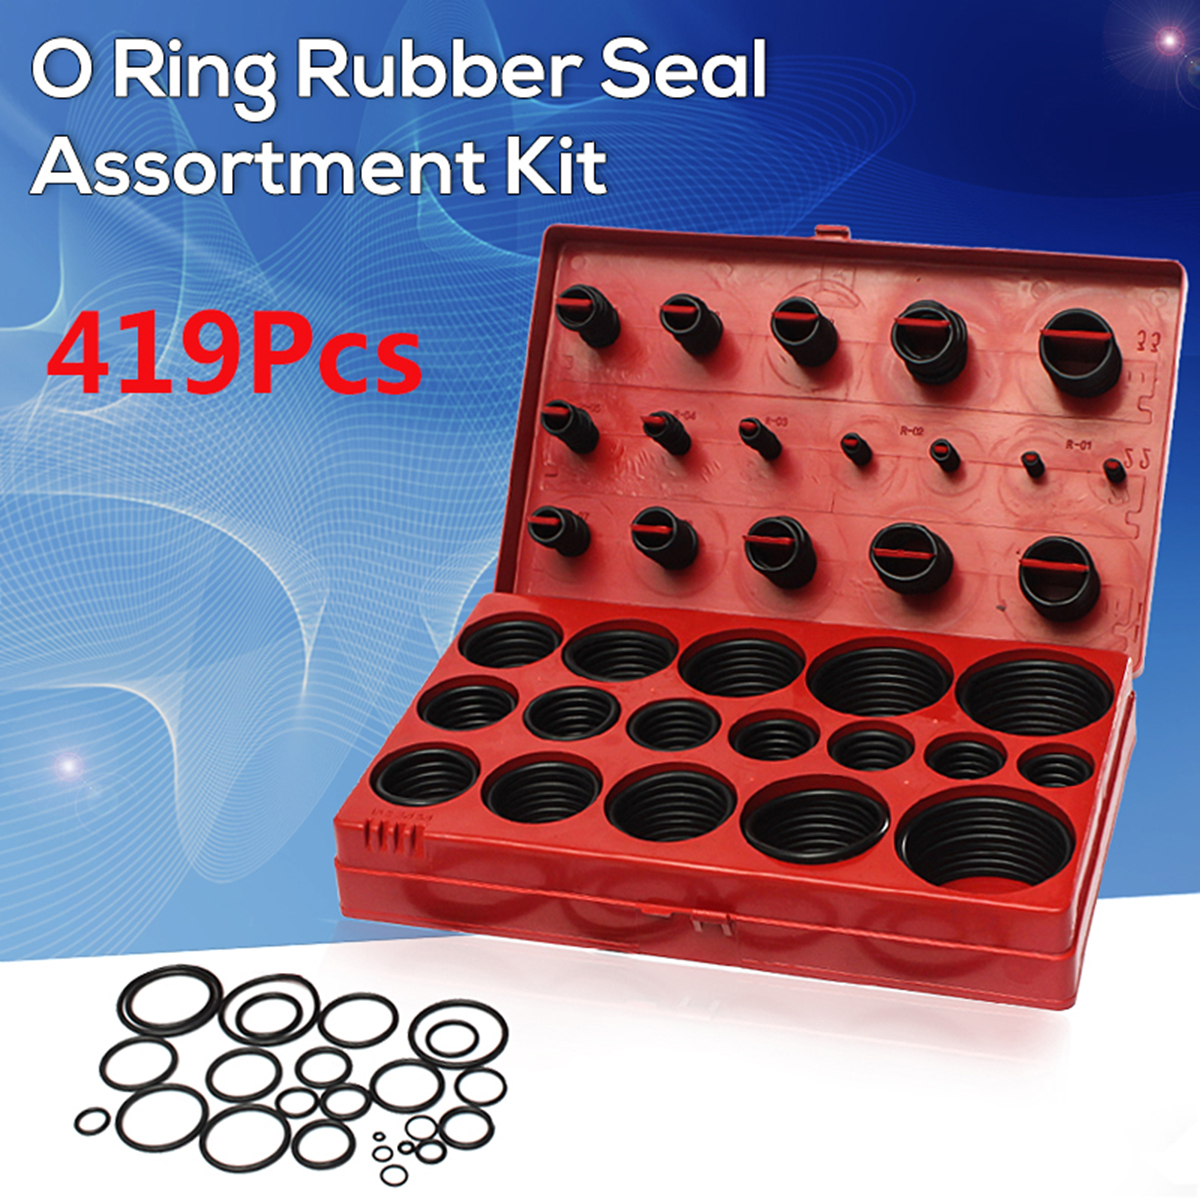 419Pcs Assorted O Ring Rubber Seal Assortment Set Kit for General Plumbers Mechanics Workshop Garage Plumbing With Case 419pcs o ring kit set rubber washer seals gaskets plumbing garage assortment auto electric repair tools accessories